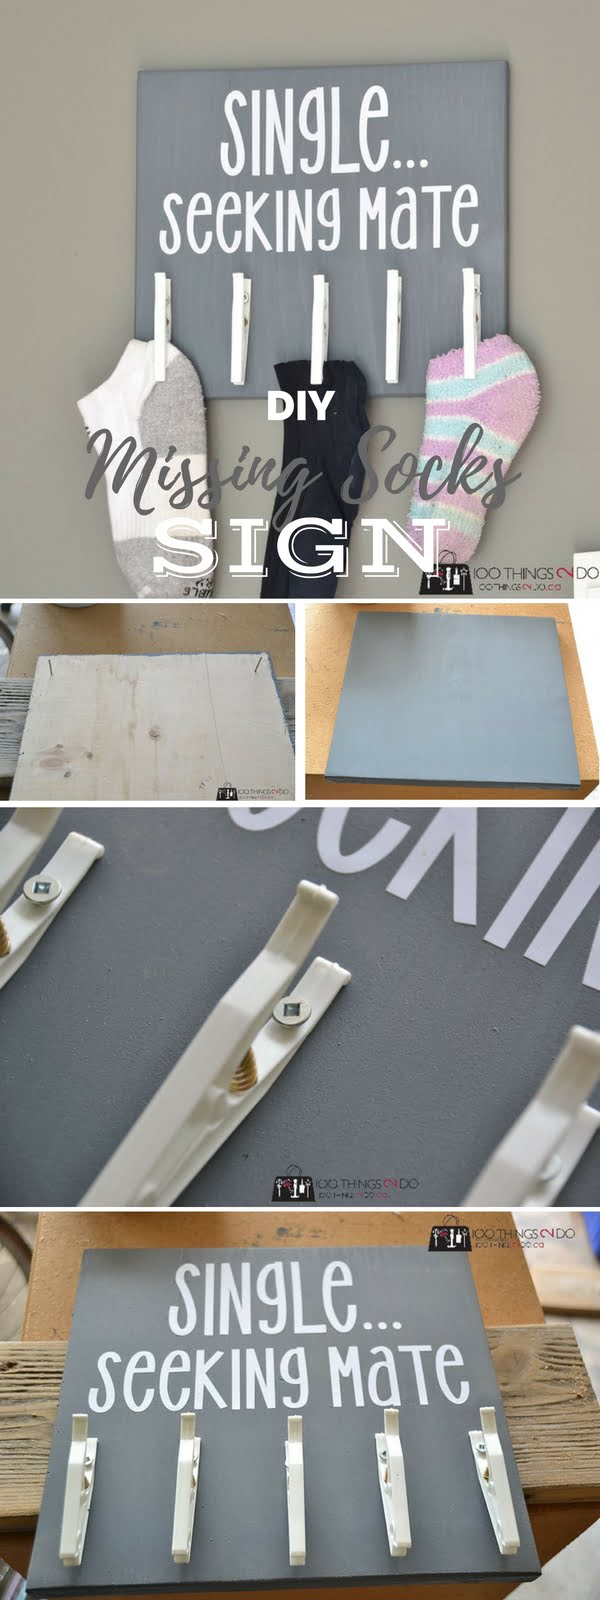 Check out the tutorial: #DIY Missing Socks Sign